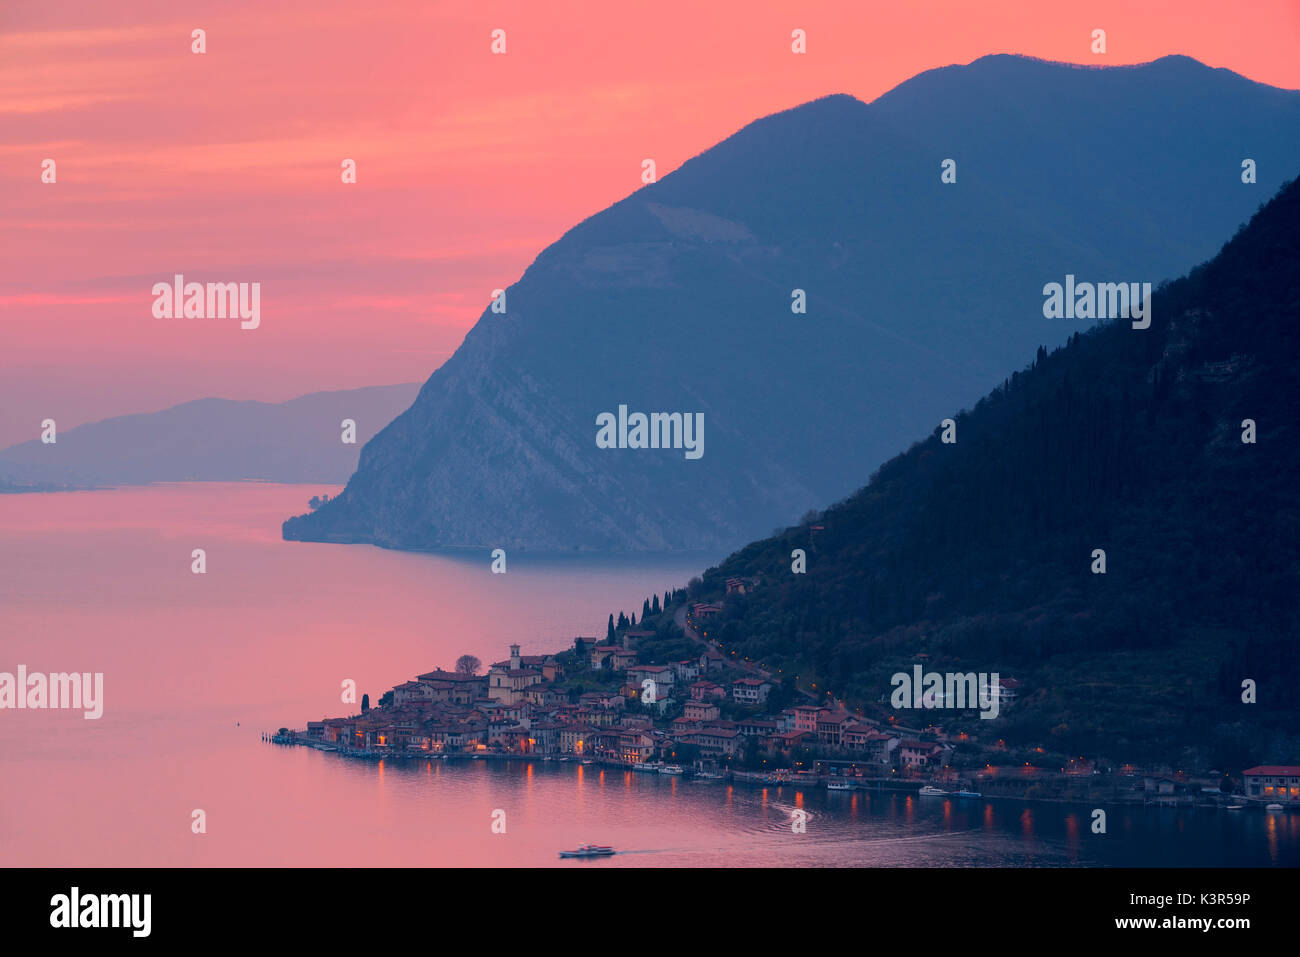 Sunset over Iseo lake, Brescia province, Italy, Lombardy district, Europe. - Stock Image